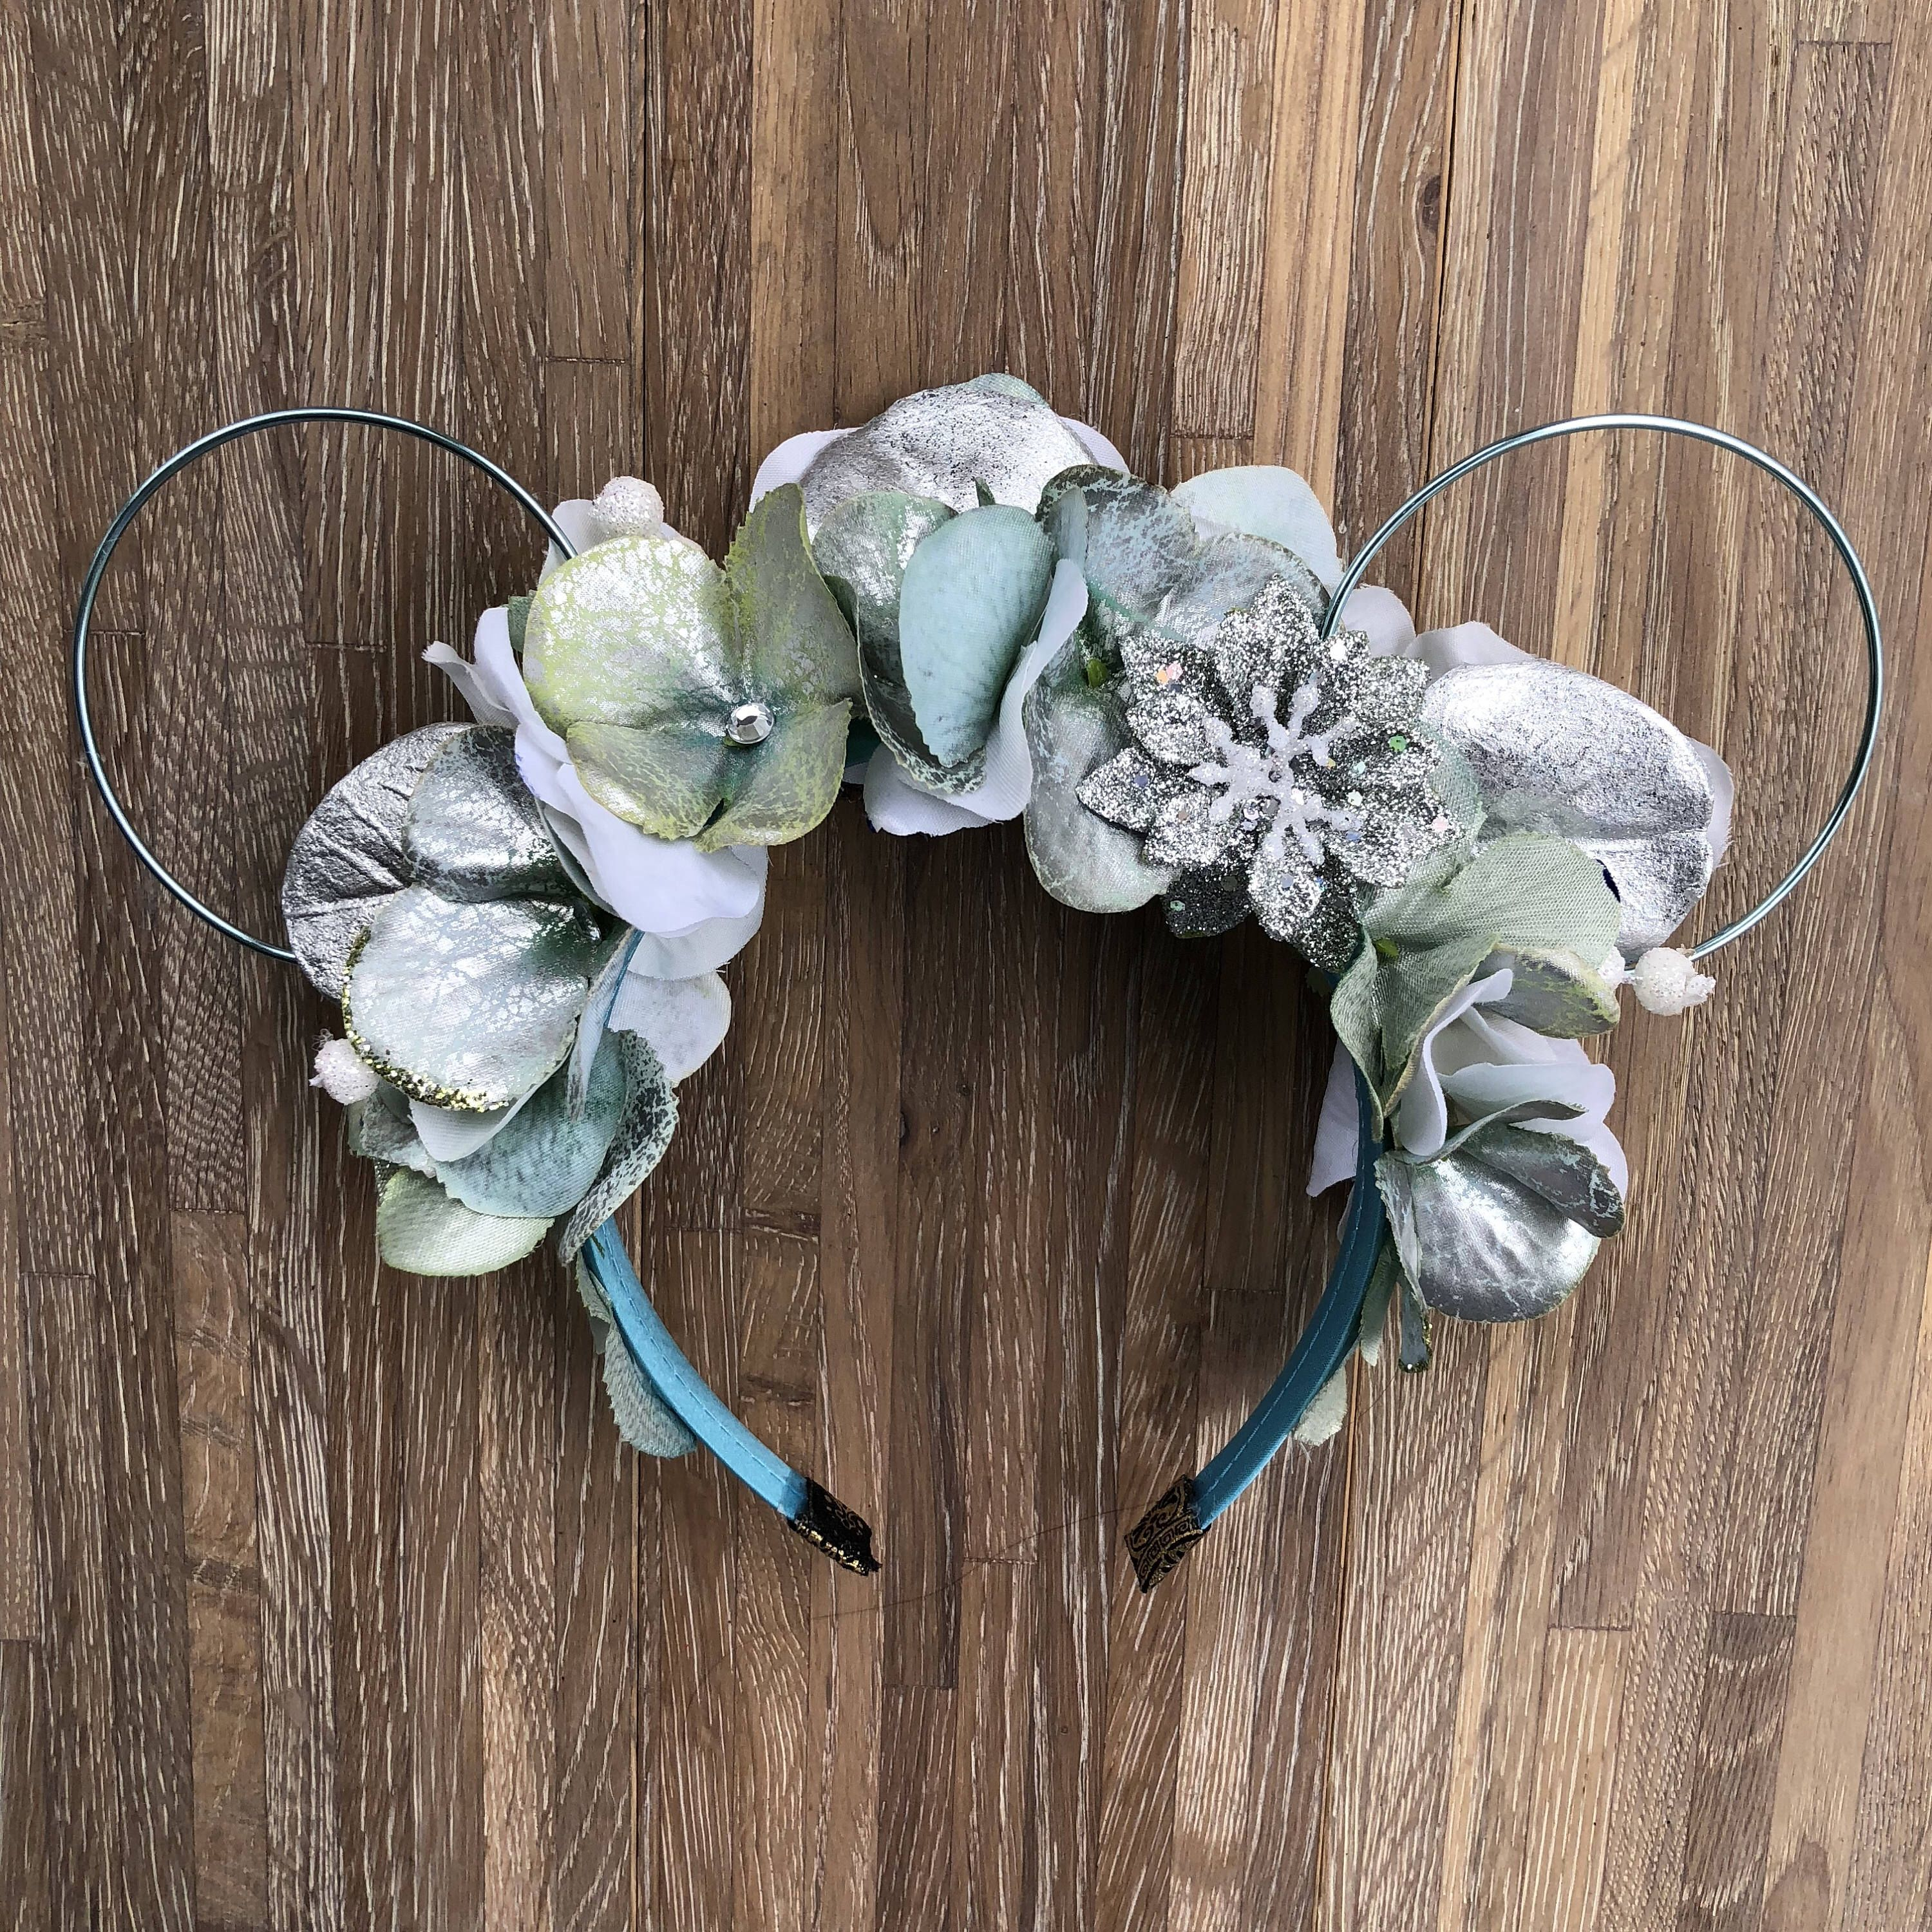 Let it go elsa frozen inspired wire flower crown mickey elsa frozen inspired wire flower crown mickey minnie mouse ears for disney aspoonfulofextra disneyworld flowercrown minnieears disneyprincess izmirmasajfo